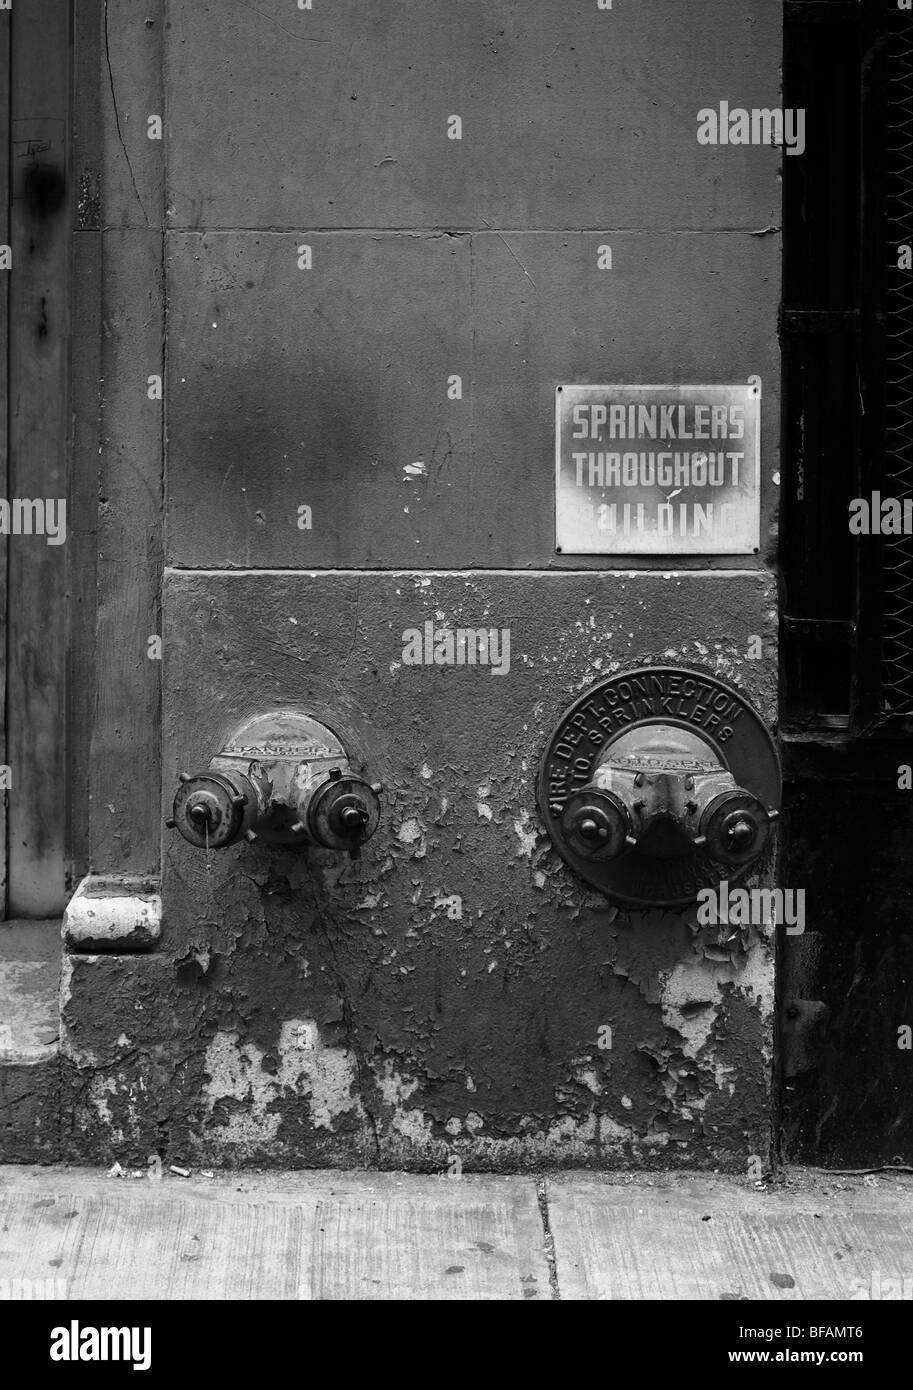 New York, fire sprinkler attachment points on the outside of the building - Stock Image